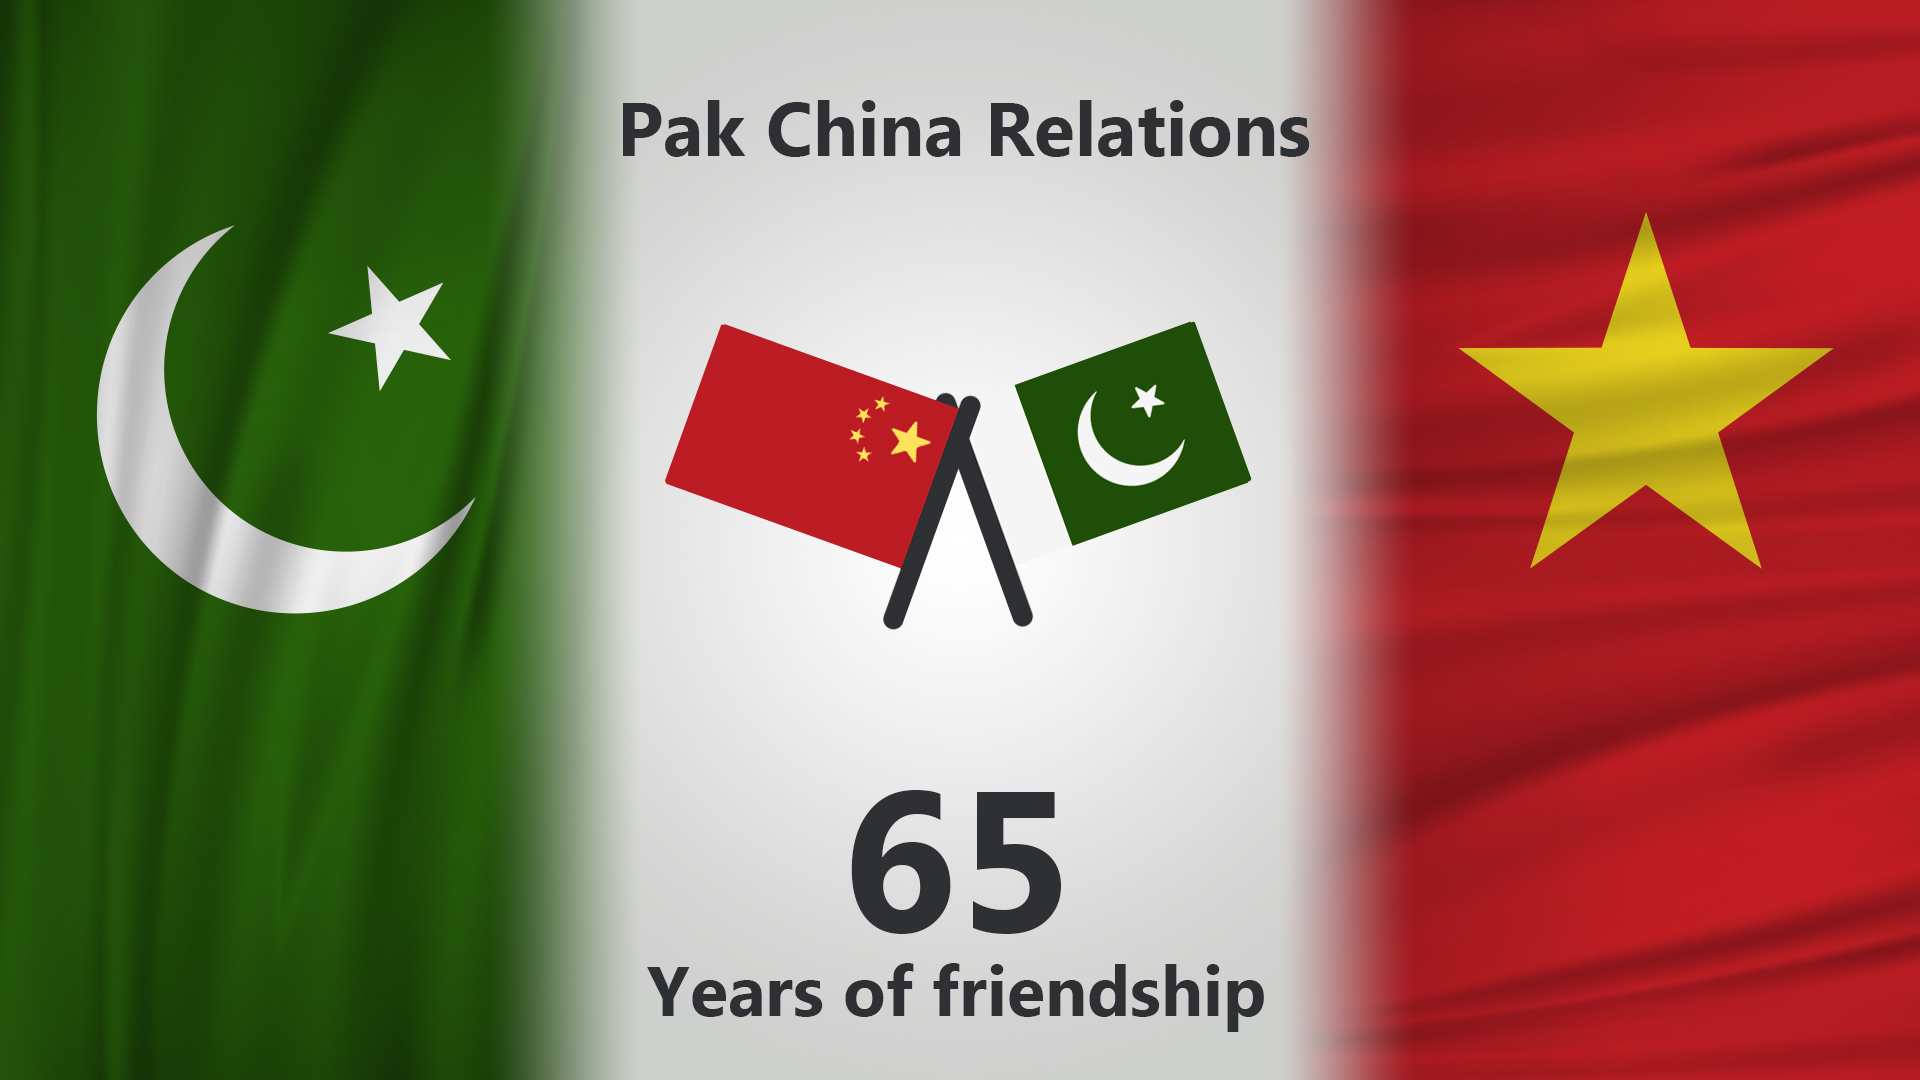 pak china relationa Relationship of pakistan and china is like a marriage which is full of love and romance and the couple is always open to admit it publicly while view of both nations is different on this marriage.